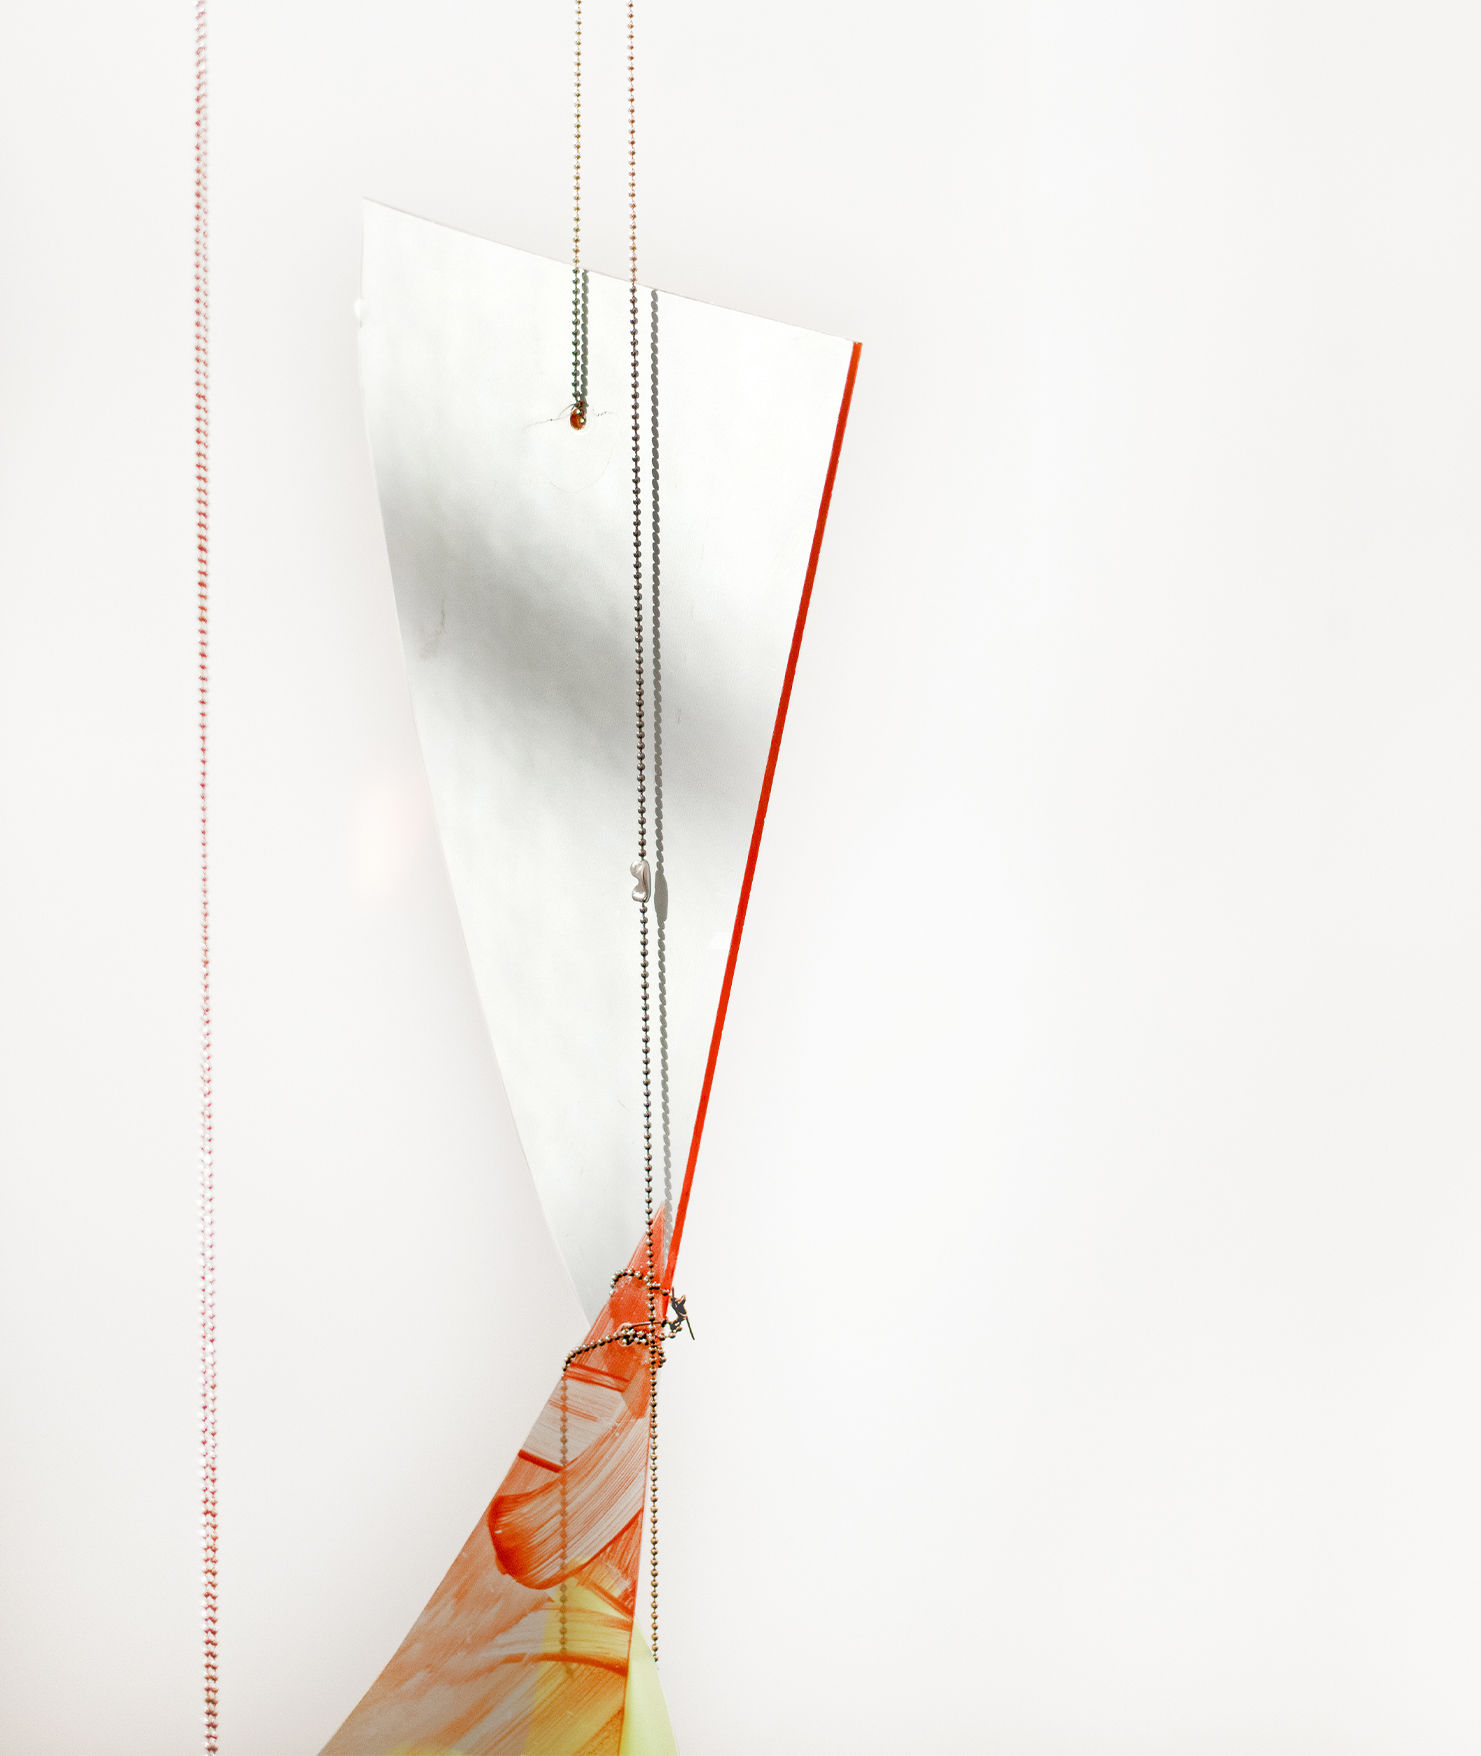 Mobile sculpture with plastic and small metal chain.